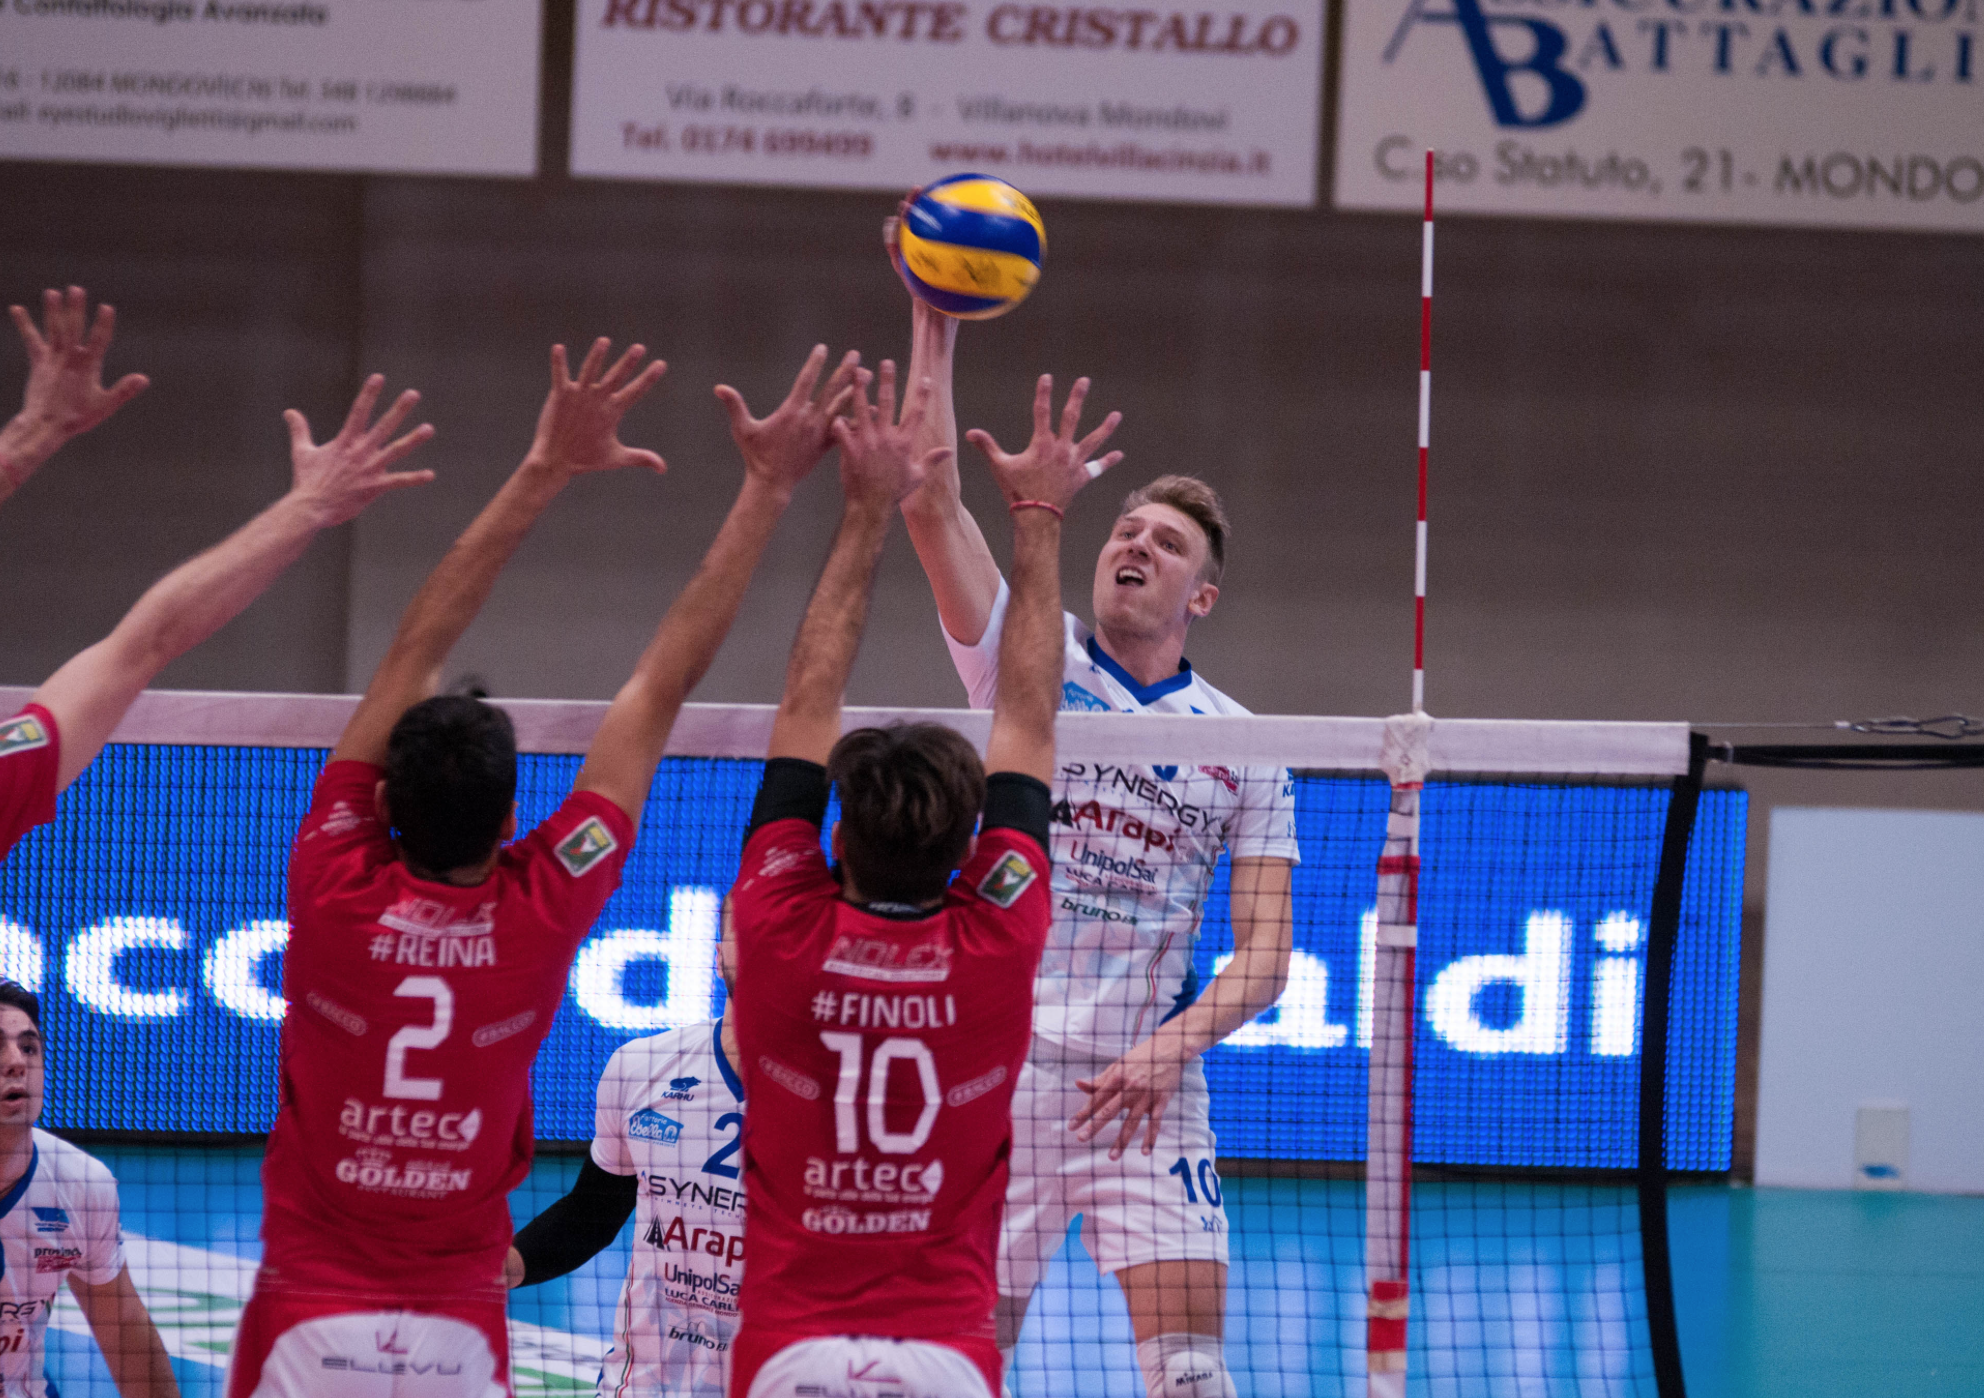 Volley Catania - Coppa Italia a Mondovì